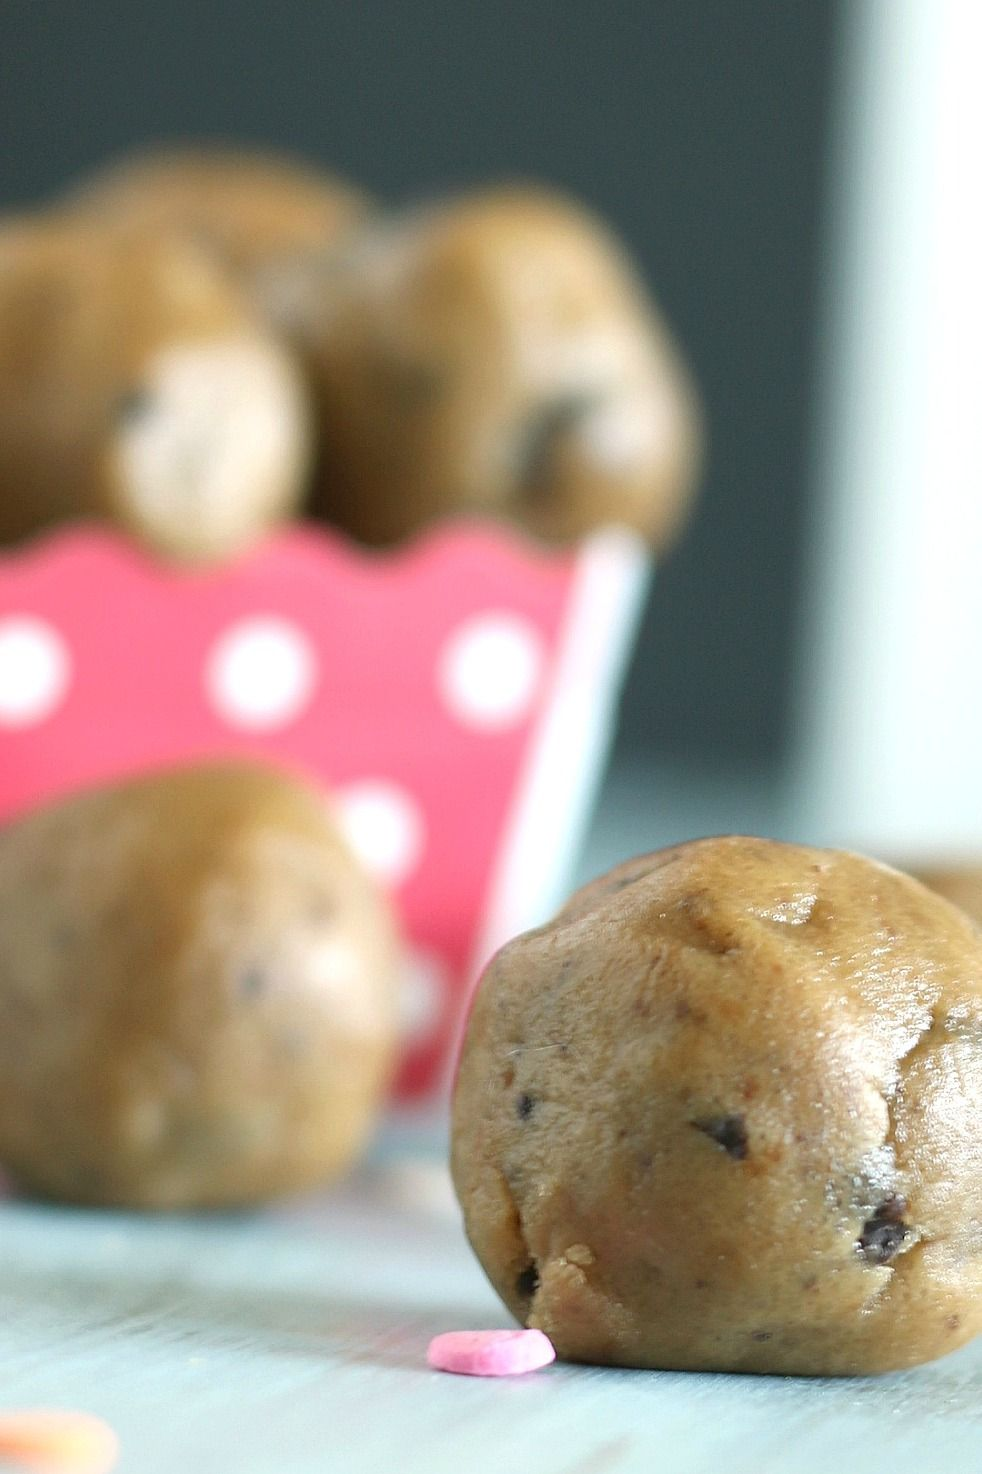 Raw, allergy-friendly cookie dough bites because we know everyone likes licking the bowl.